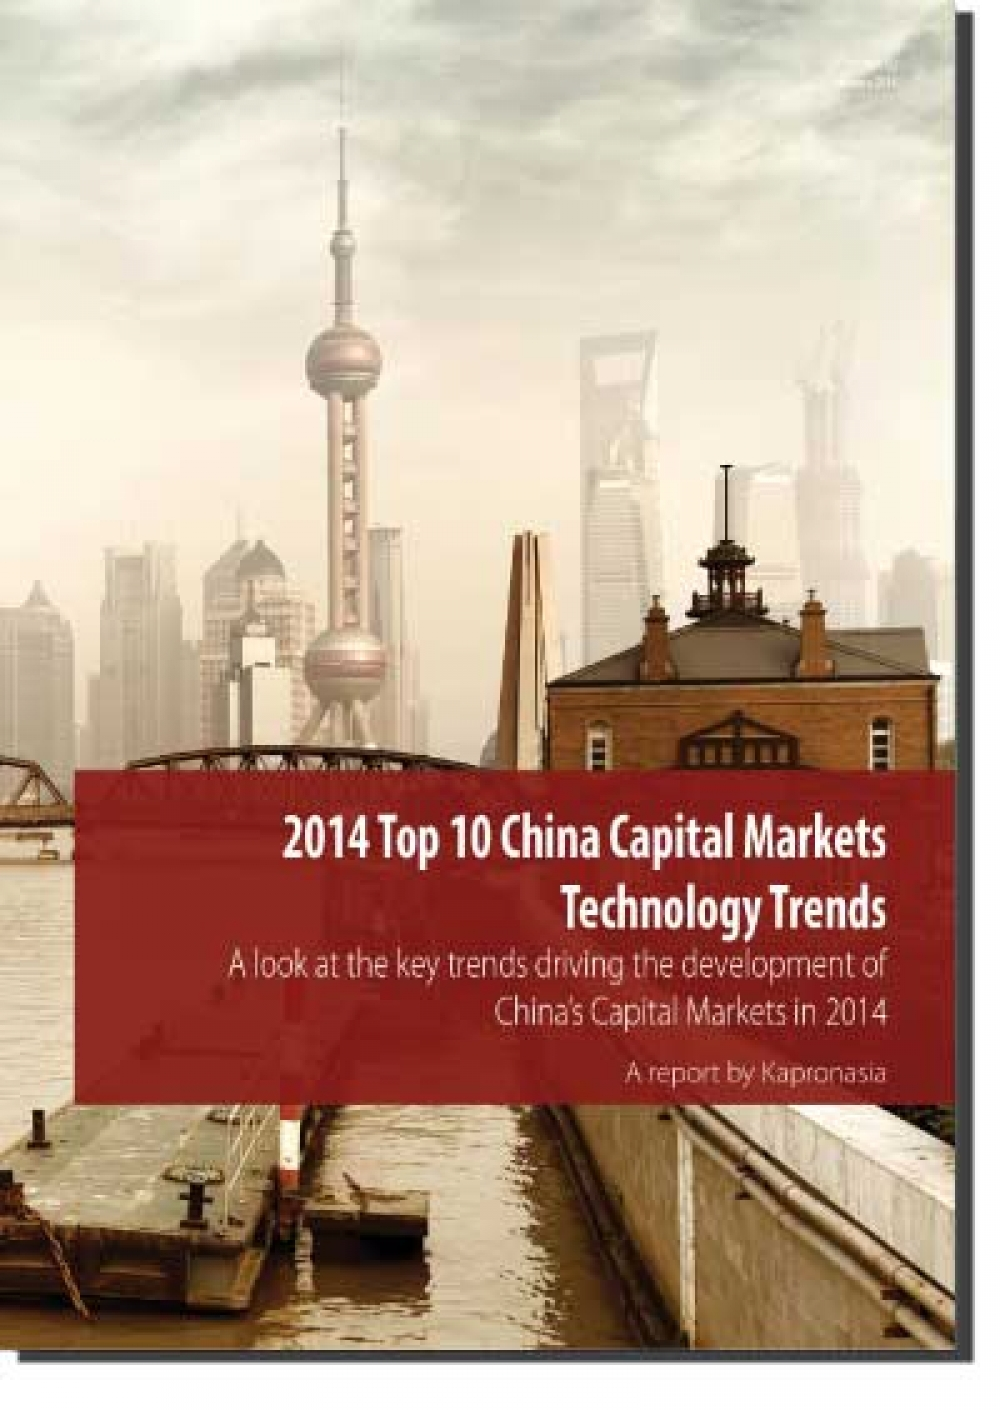 Top 10 China Capital Markets Technology Trends 2014